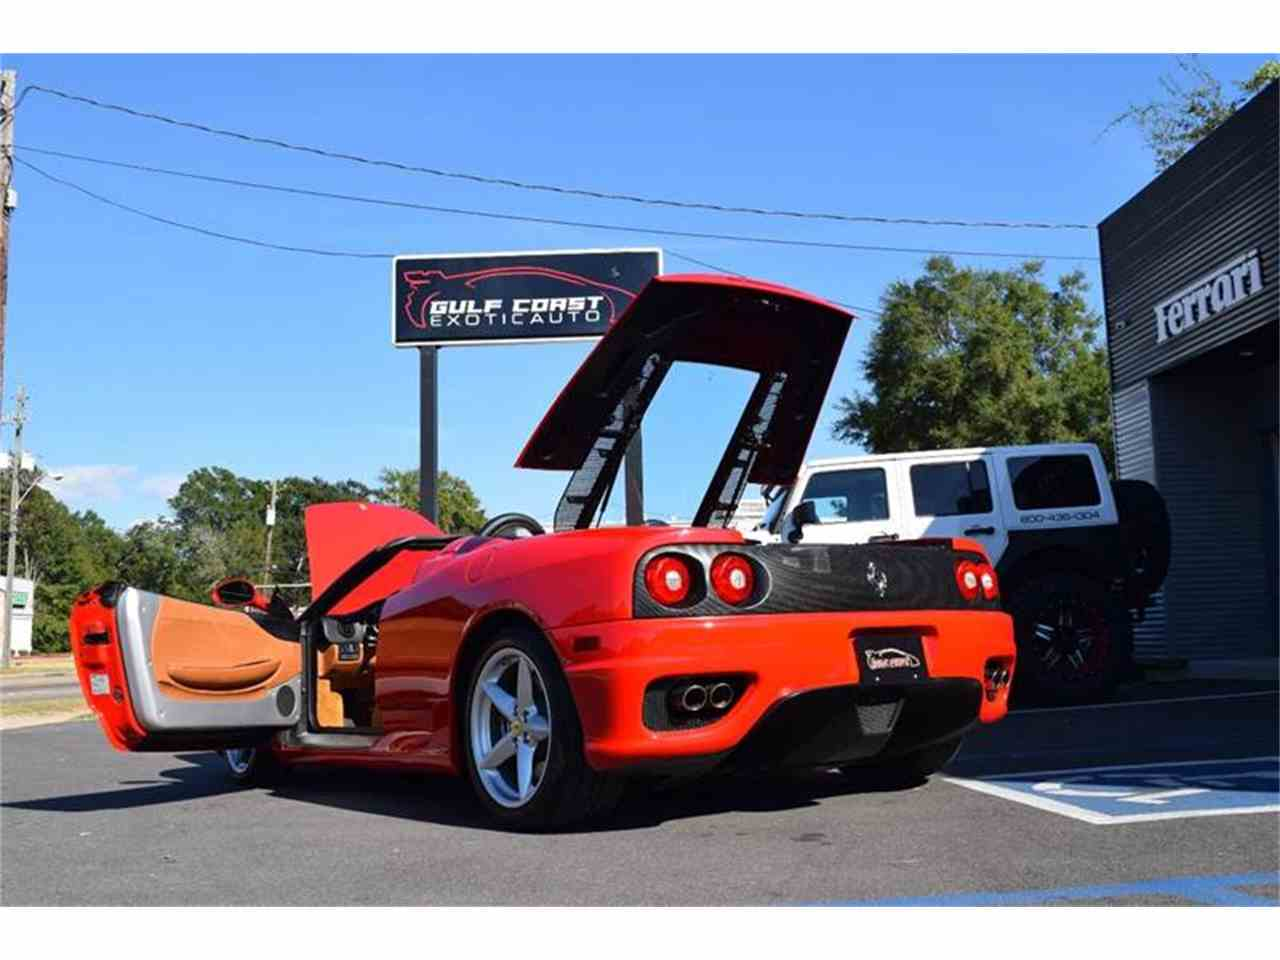 Large Picture of 2004 Ferrari 360 located in Biloxi Mississippi Offered by Gulf Coast Exotic Auto - KCL8